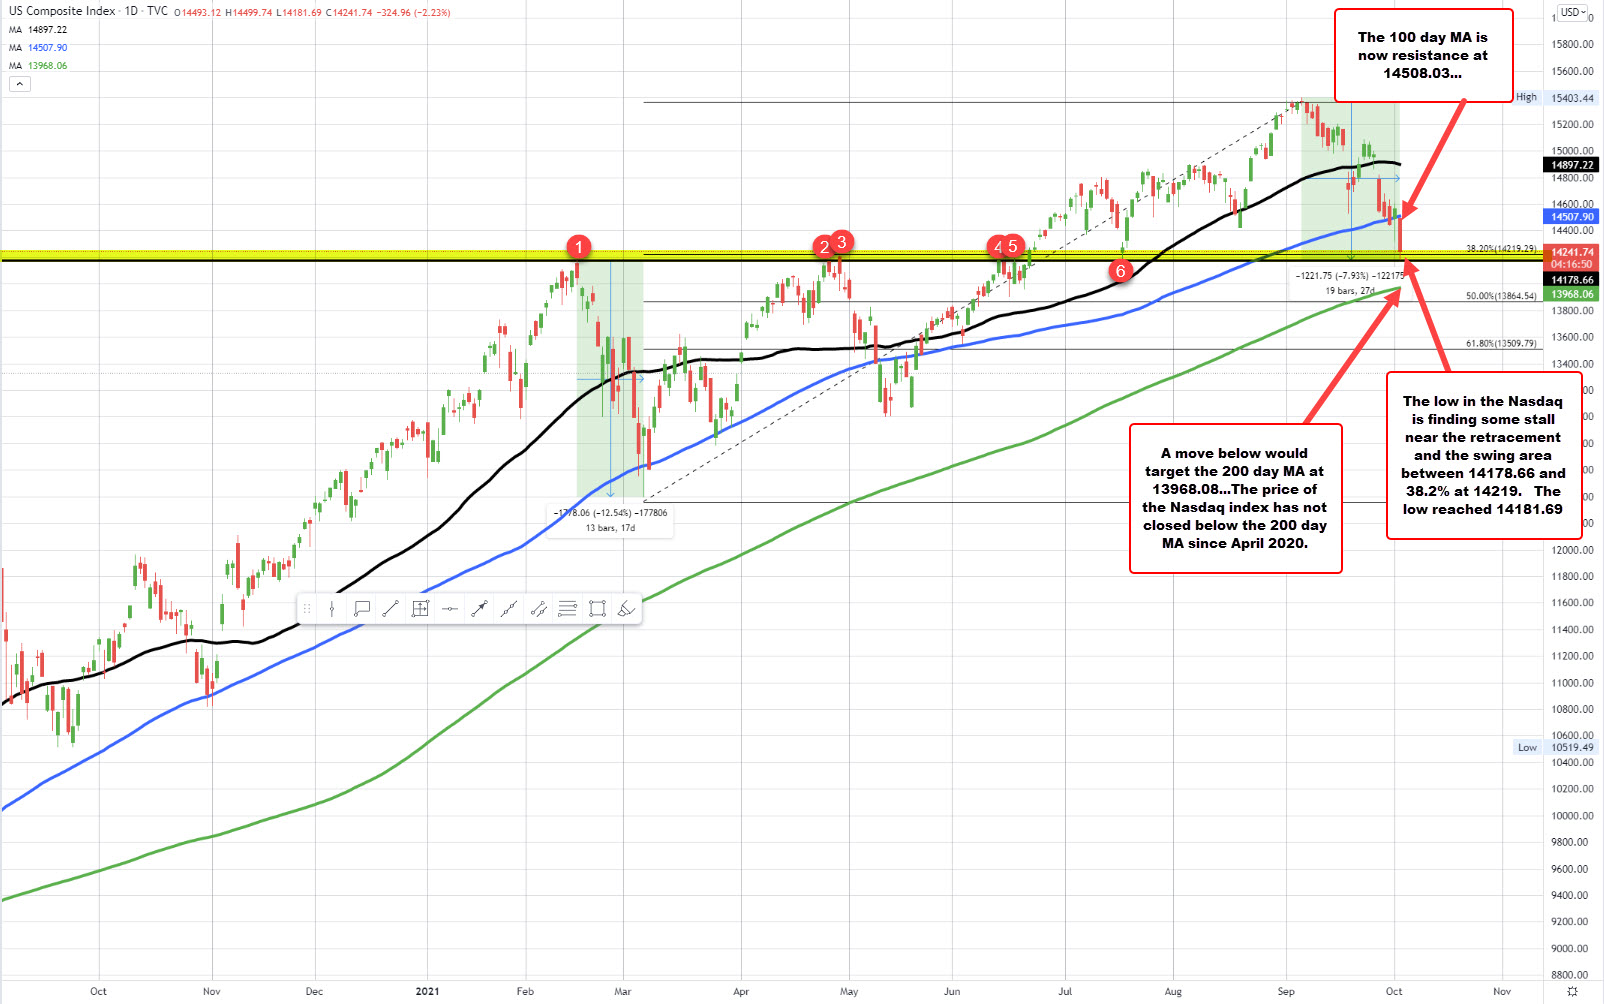 NASDAQ index up find some support and bounces marginally